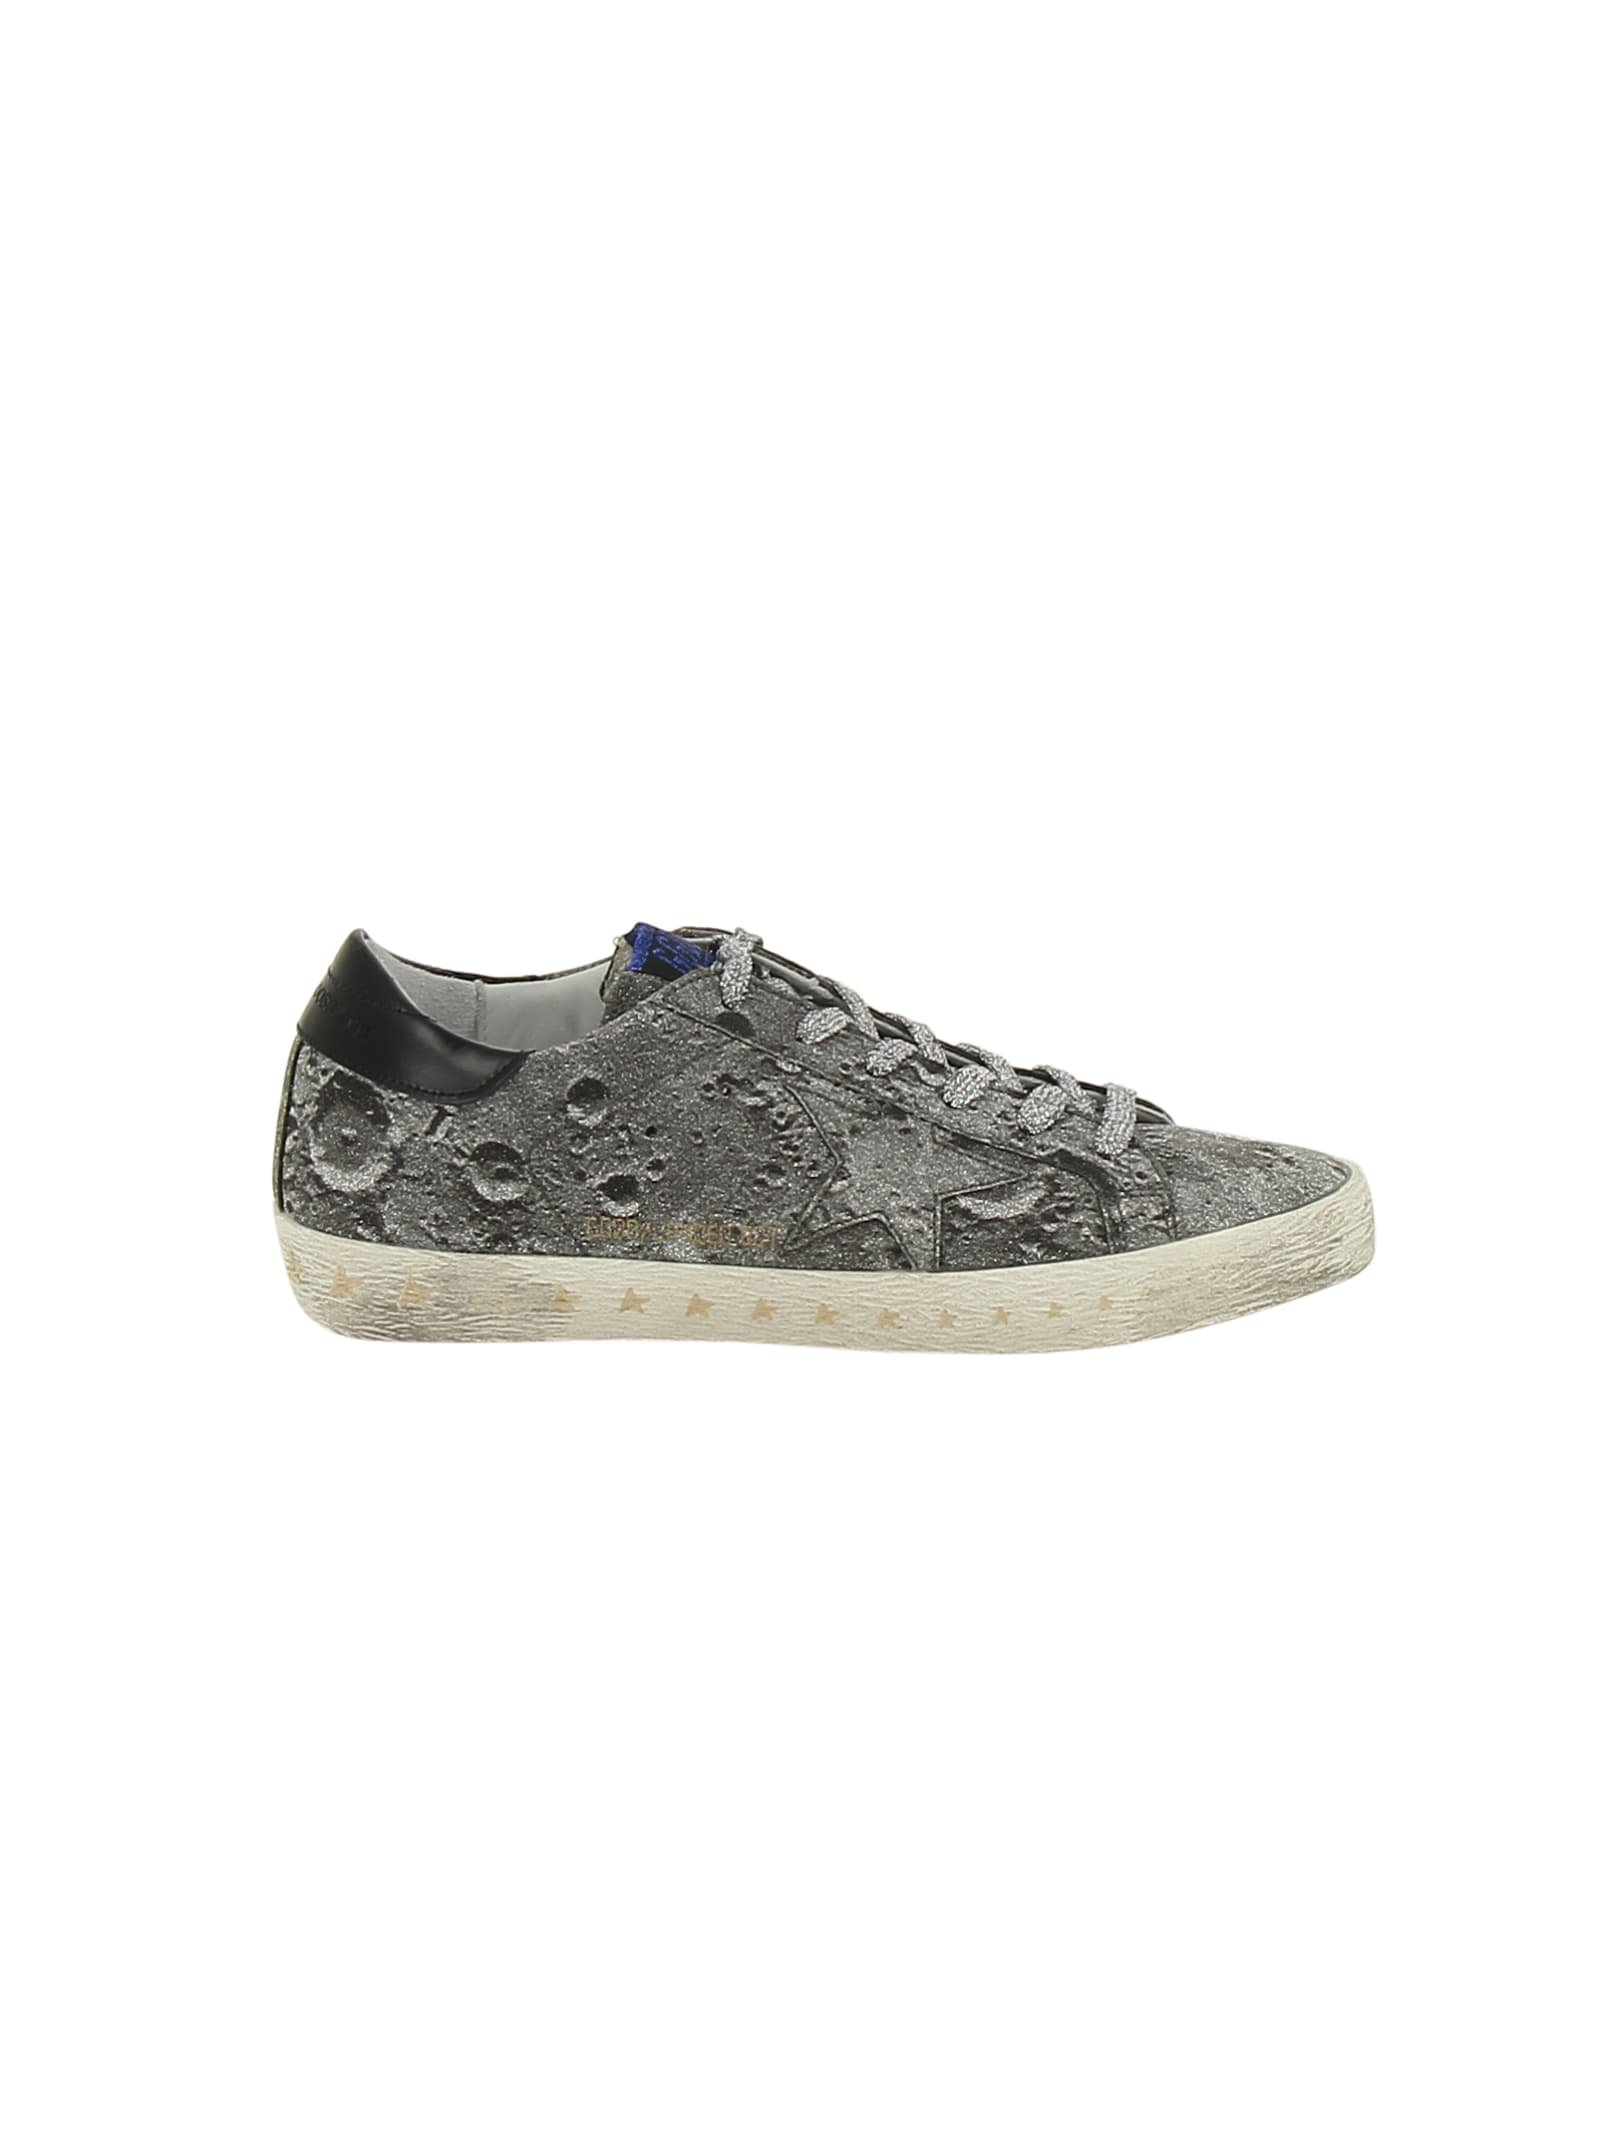 Golden Goose Deluxe Brand Glitter Superstar Sneakers